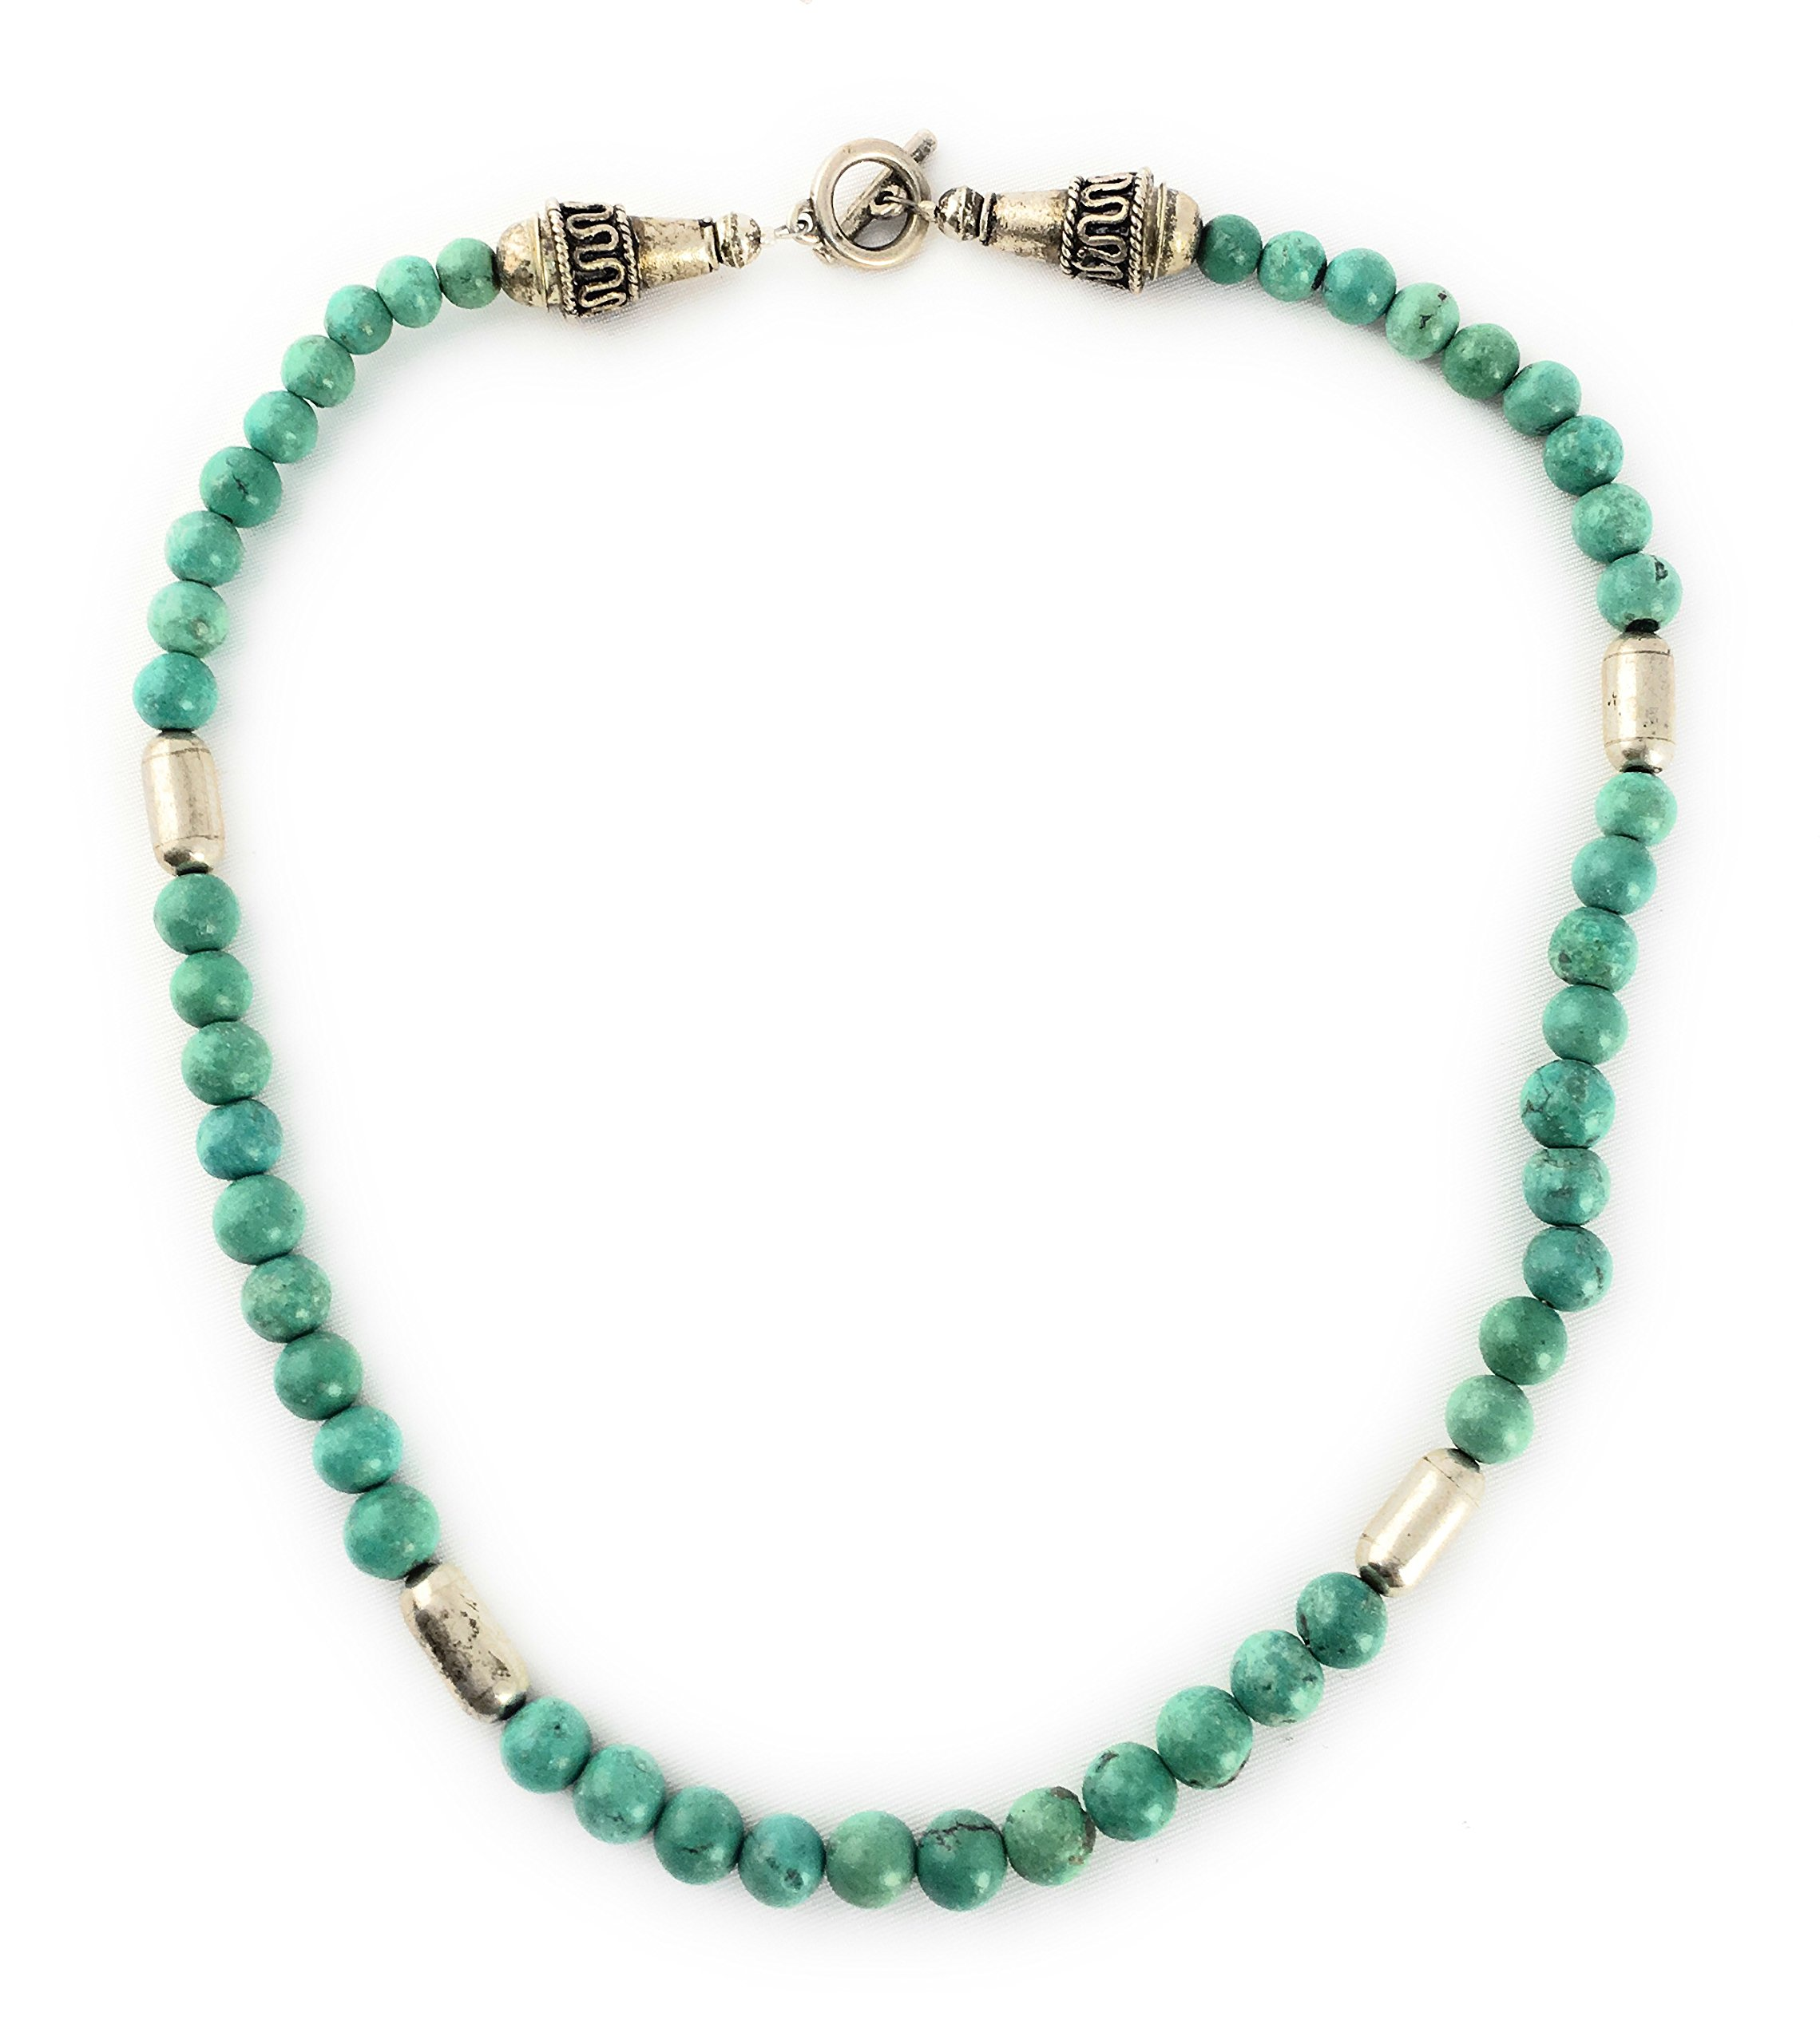 Masha Storewide Sale ! Sterling Silver Necklace By Turquoise, Made in USA - Exclusive Southwestern Handmade Jewelry, Gift